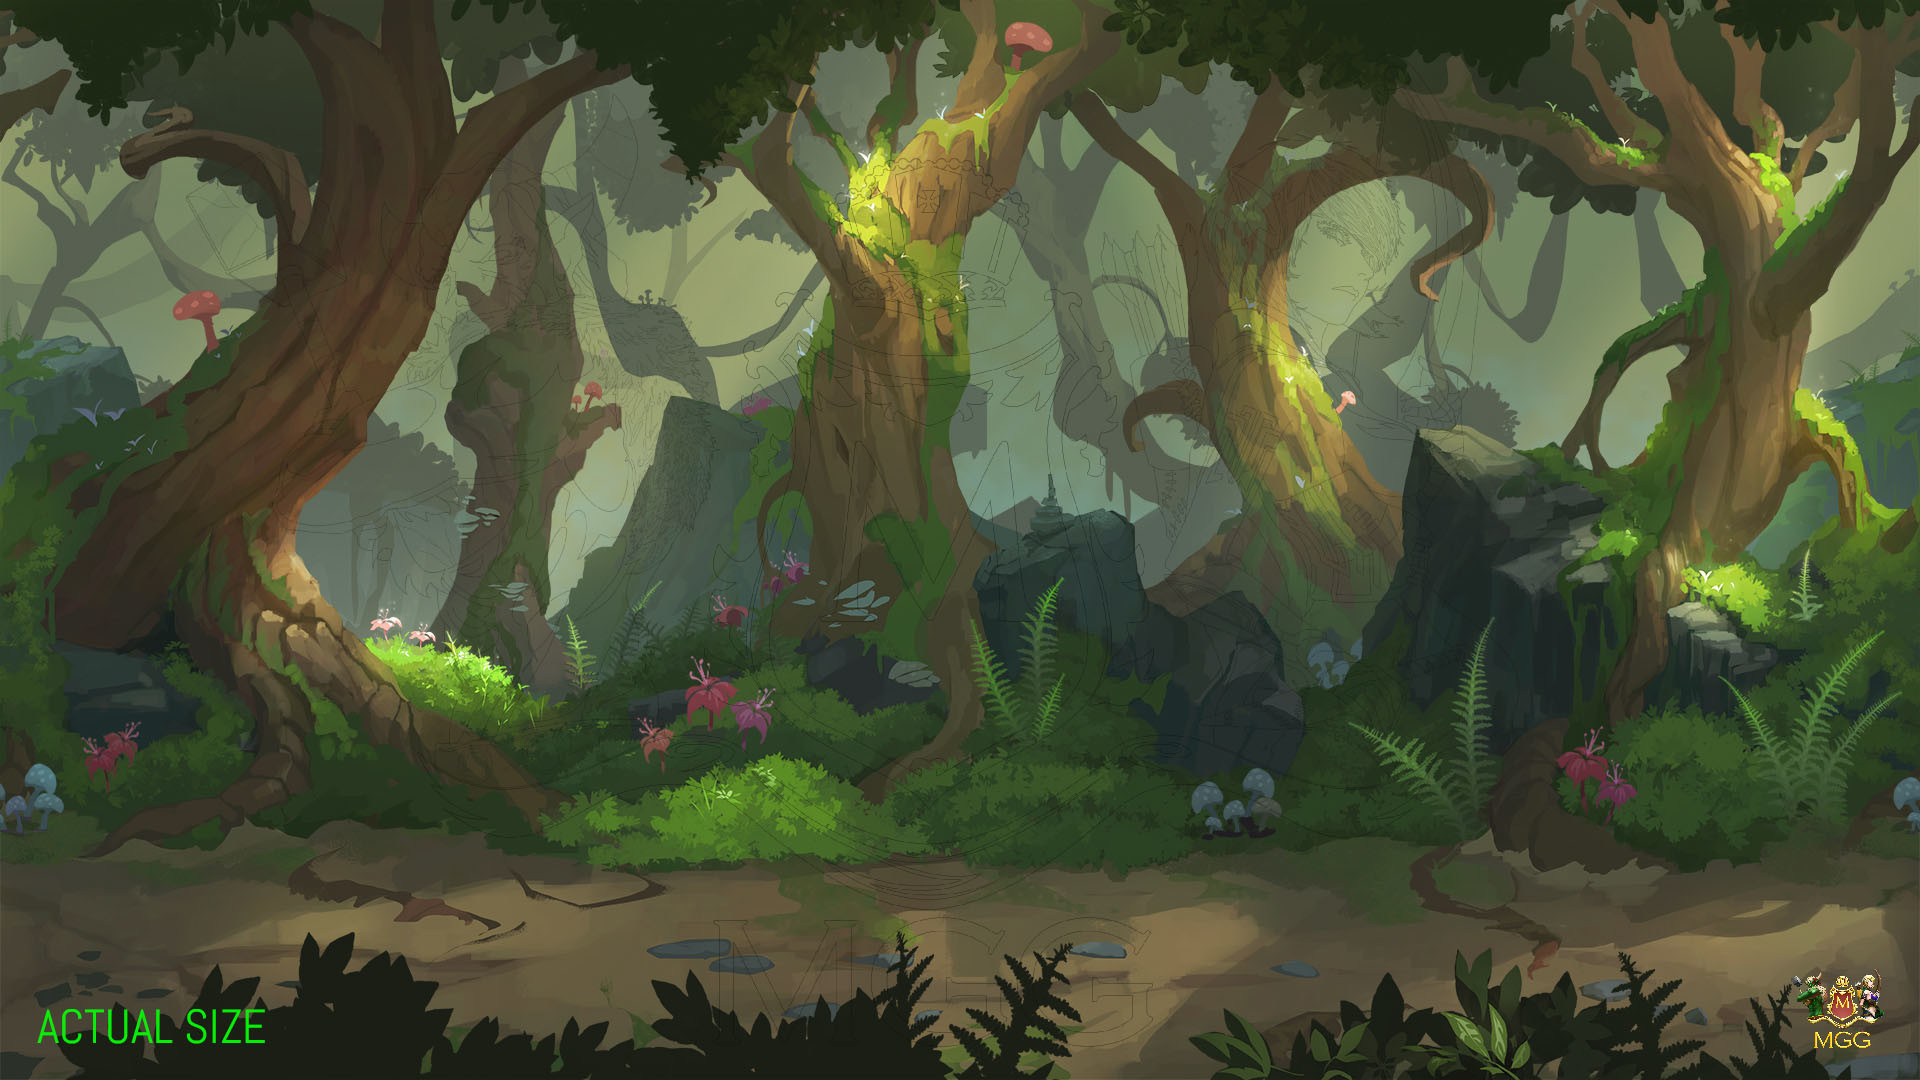 Gravity Falls Wallpaper Forest Background Forest 183 ① Wallpapertag